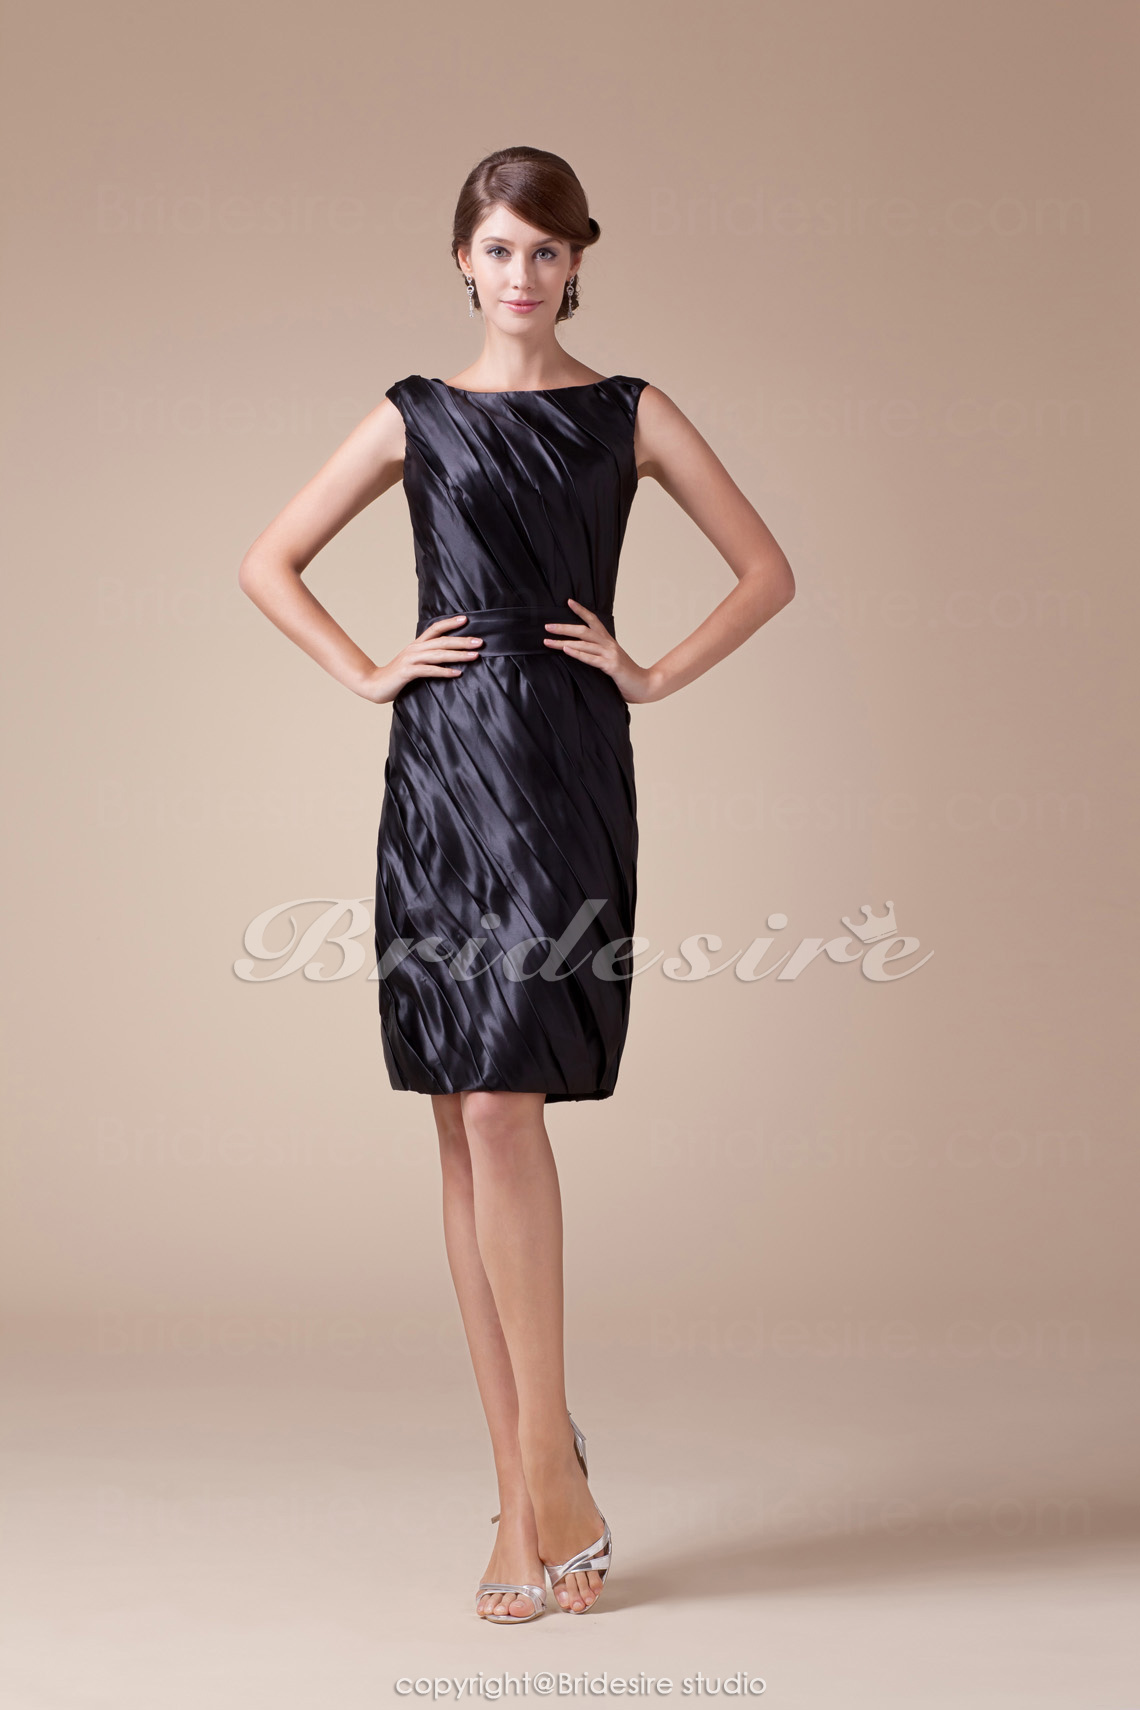 Sheath/Column Scoop Knee-length Long Sleeve Sleeveless Stretch Satin Dress